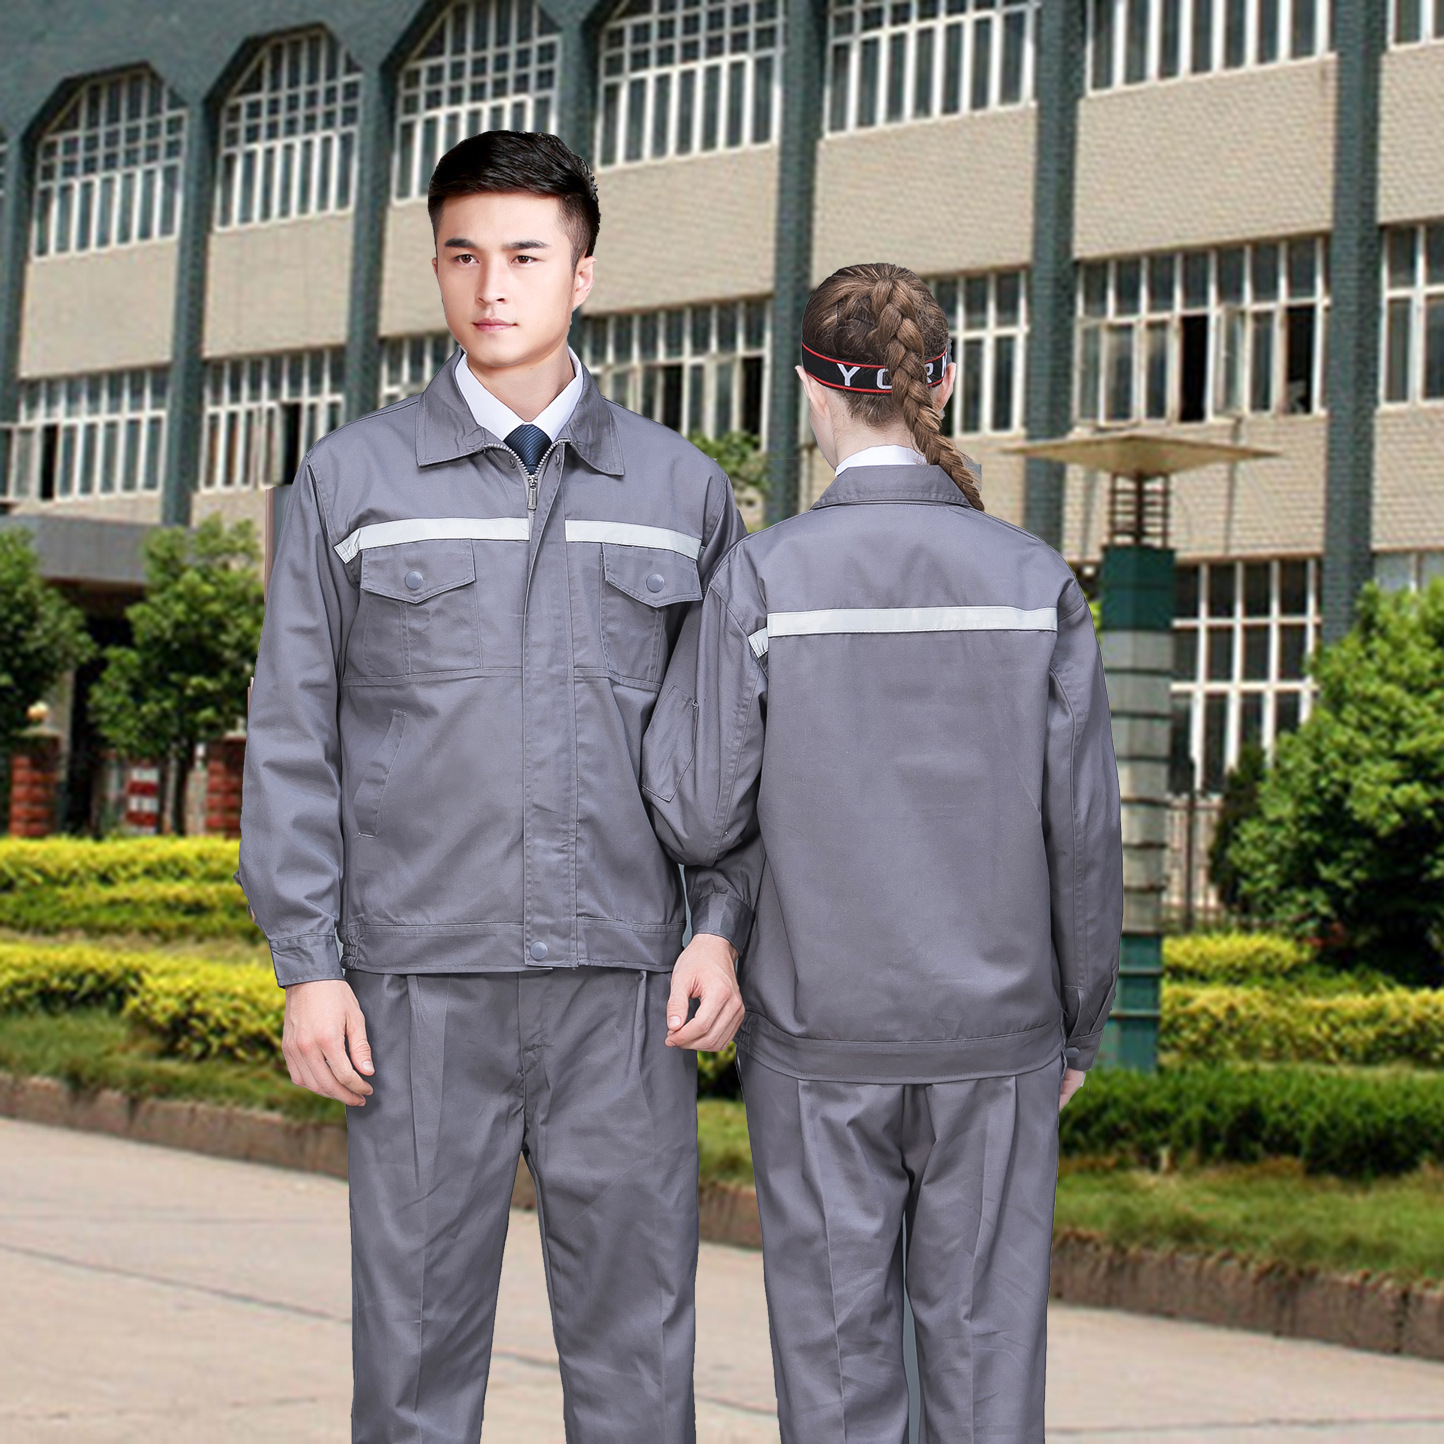 Factory workshop uniform long sleeve autumn clothes property power station electricians clothes elevator maintainers work clothes road and Bridge supervision clothes